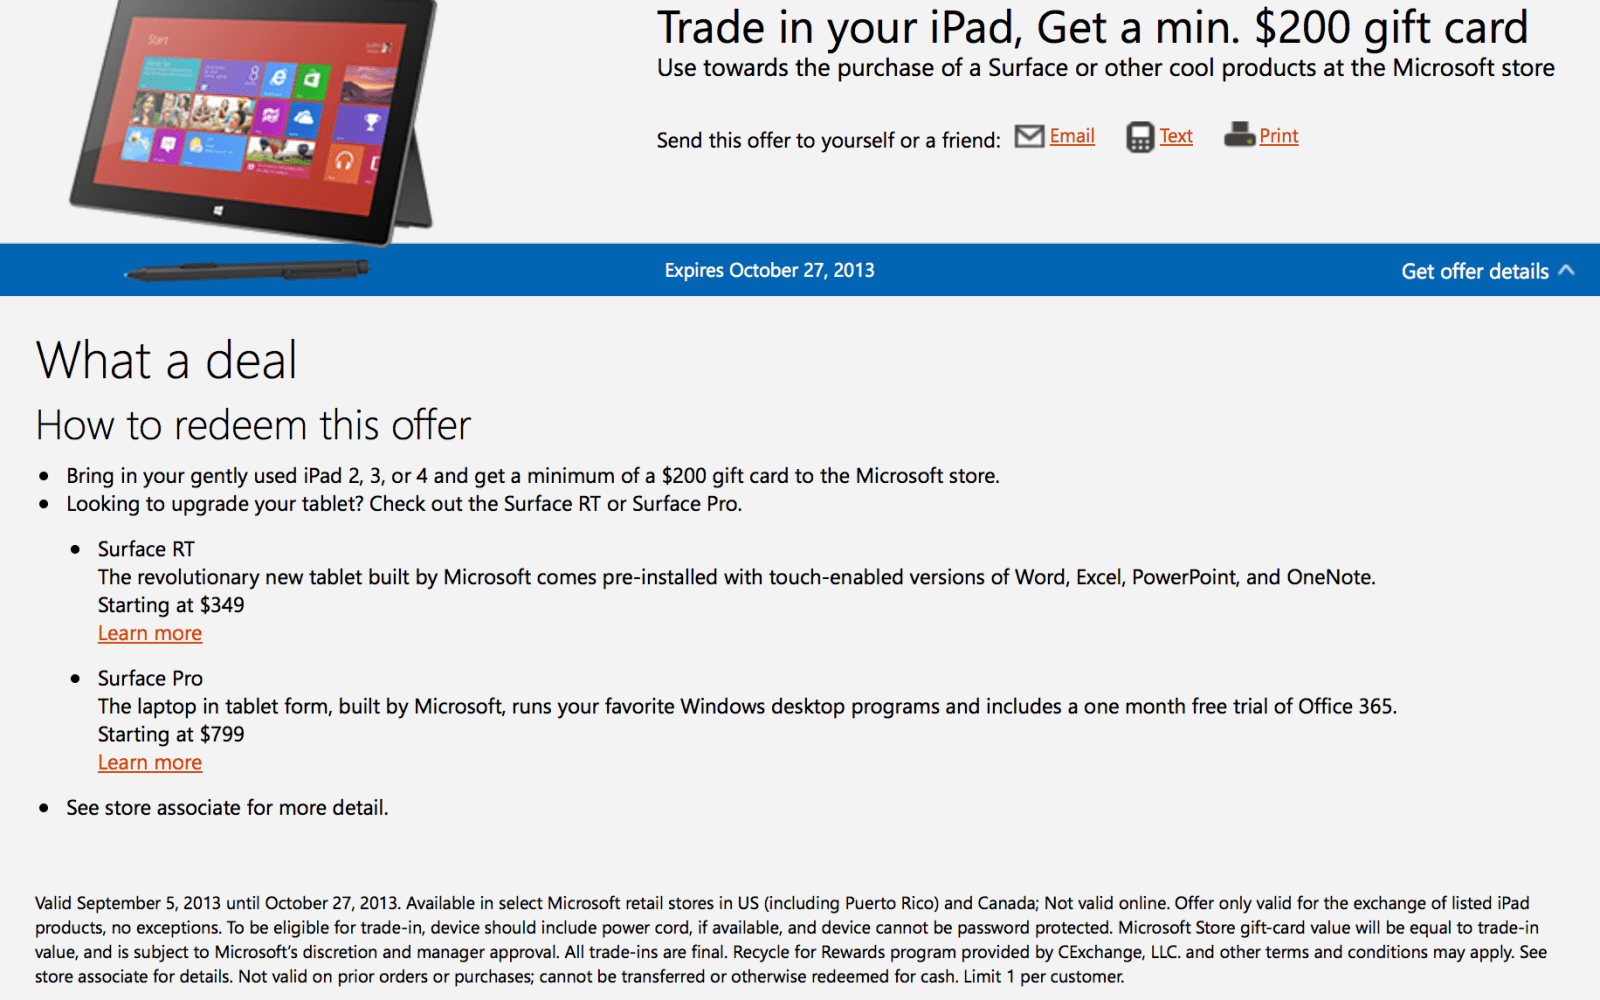 Microsoft offering up $200 discounts on Surface with iPad trade-in